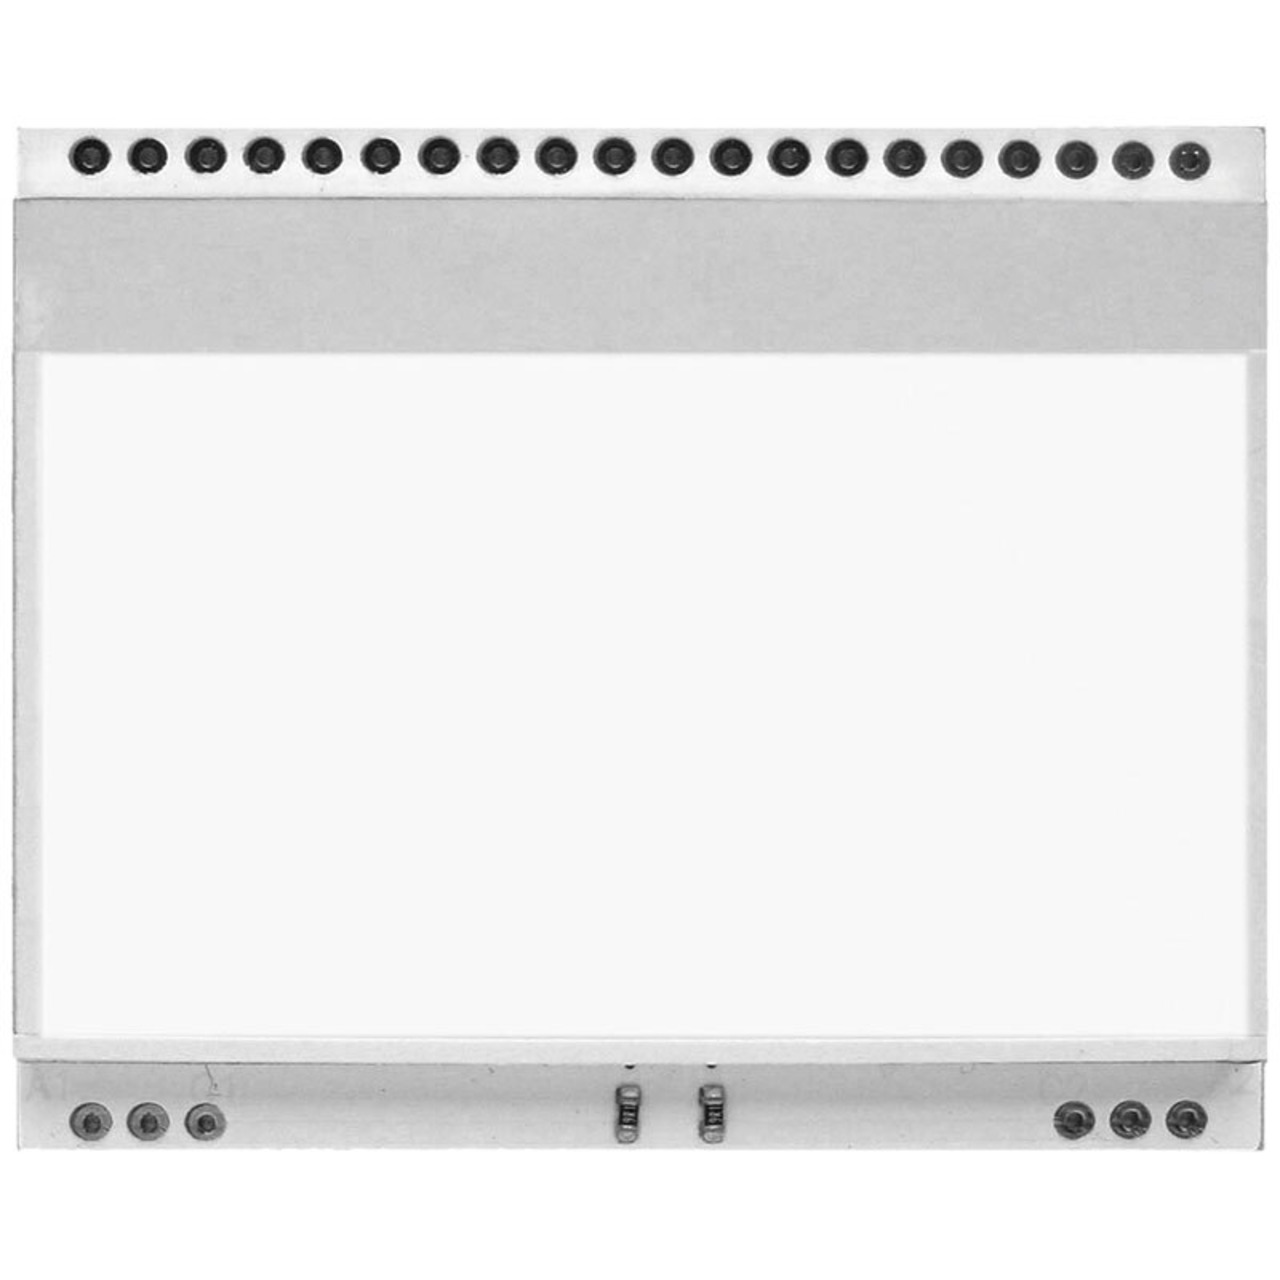 Electronic Assembly LED-Hintergrundbeleuchtung- weiss für EA DOGM128